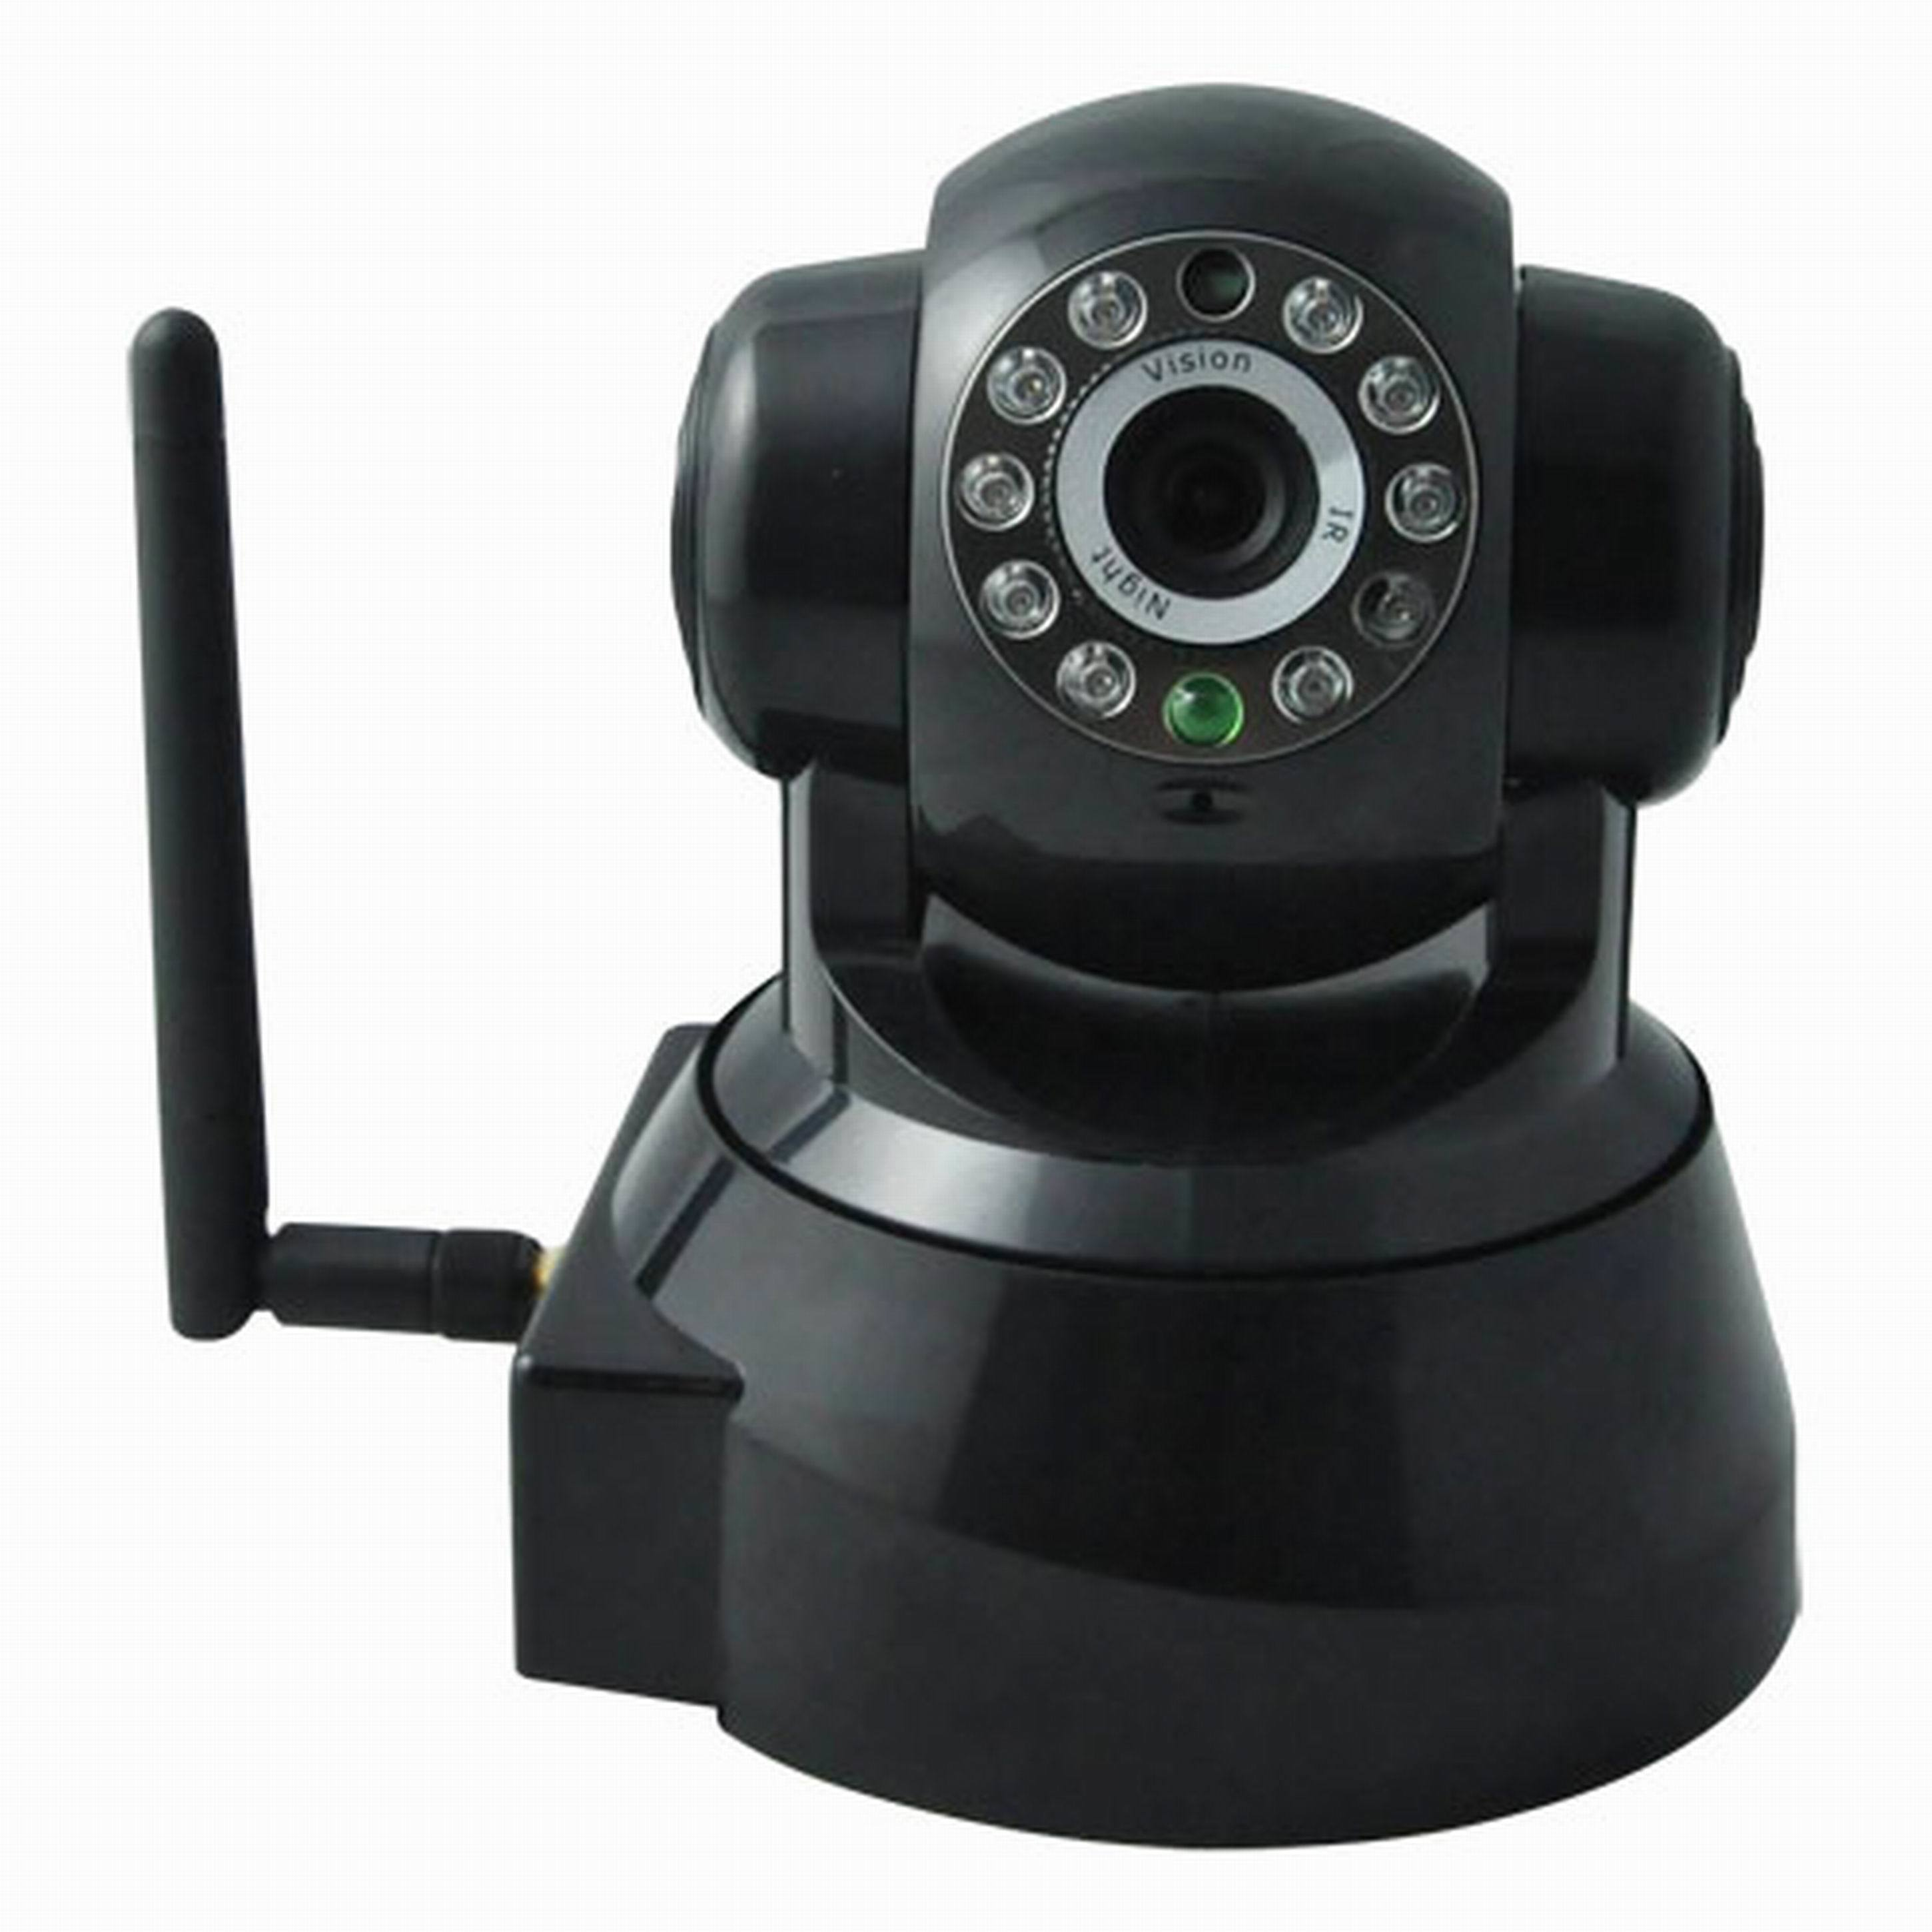 wireless wifi ip camera. Black Bedroom Furniture Sets. Home Design Ideas